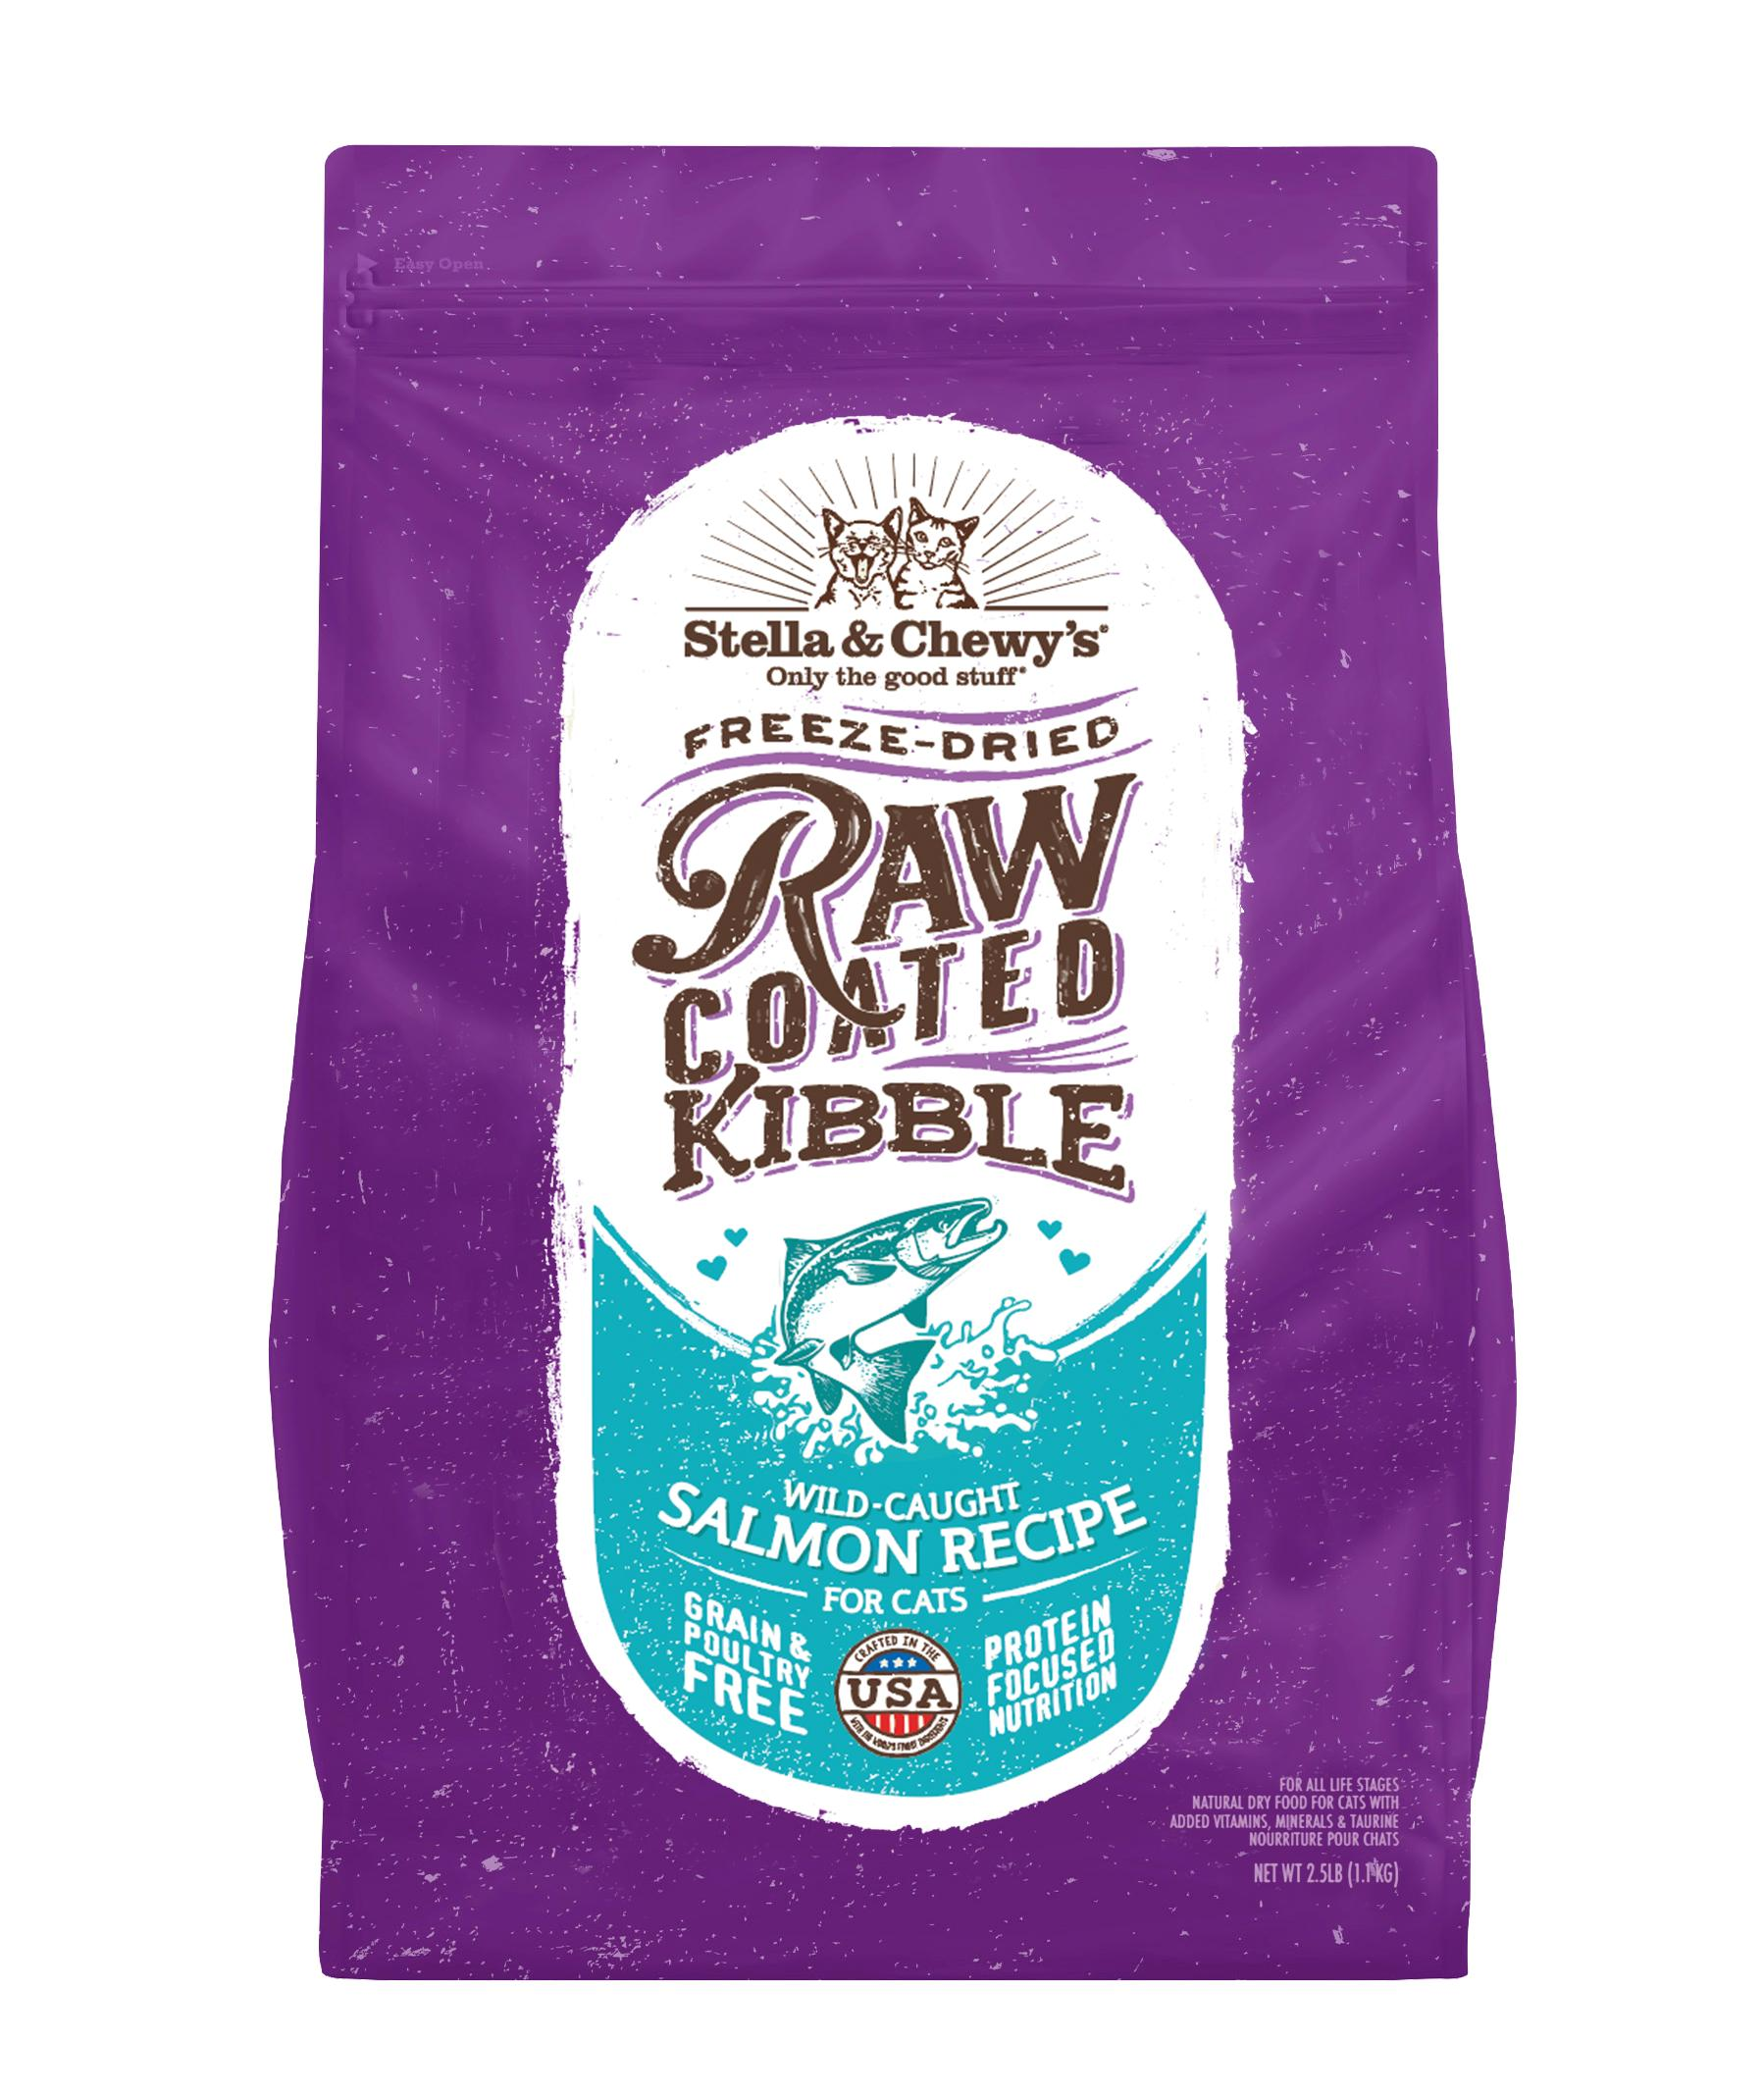 Stella & Chewy's Raw Coated Kibble Wild Caught Salmon Recipe Grain-Free Dry Cat Food Image